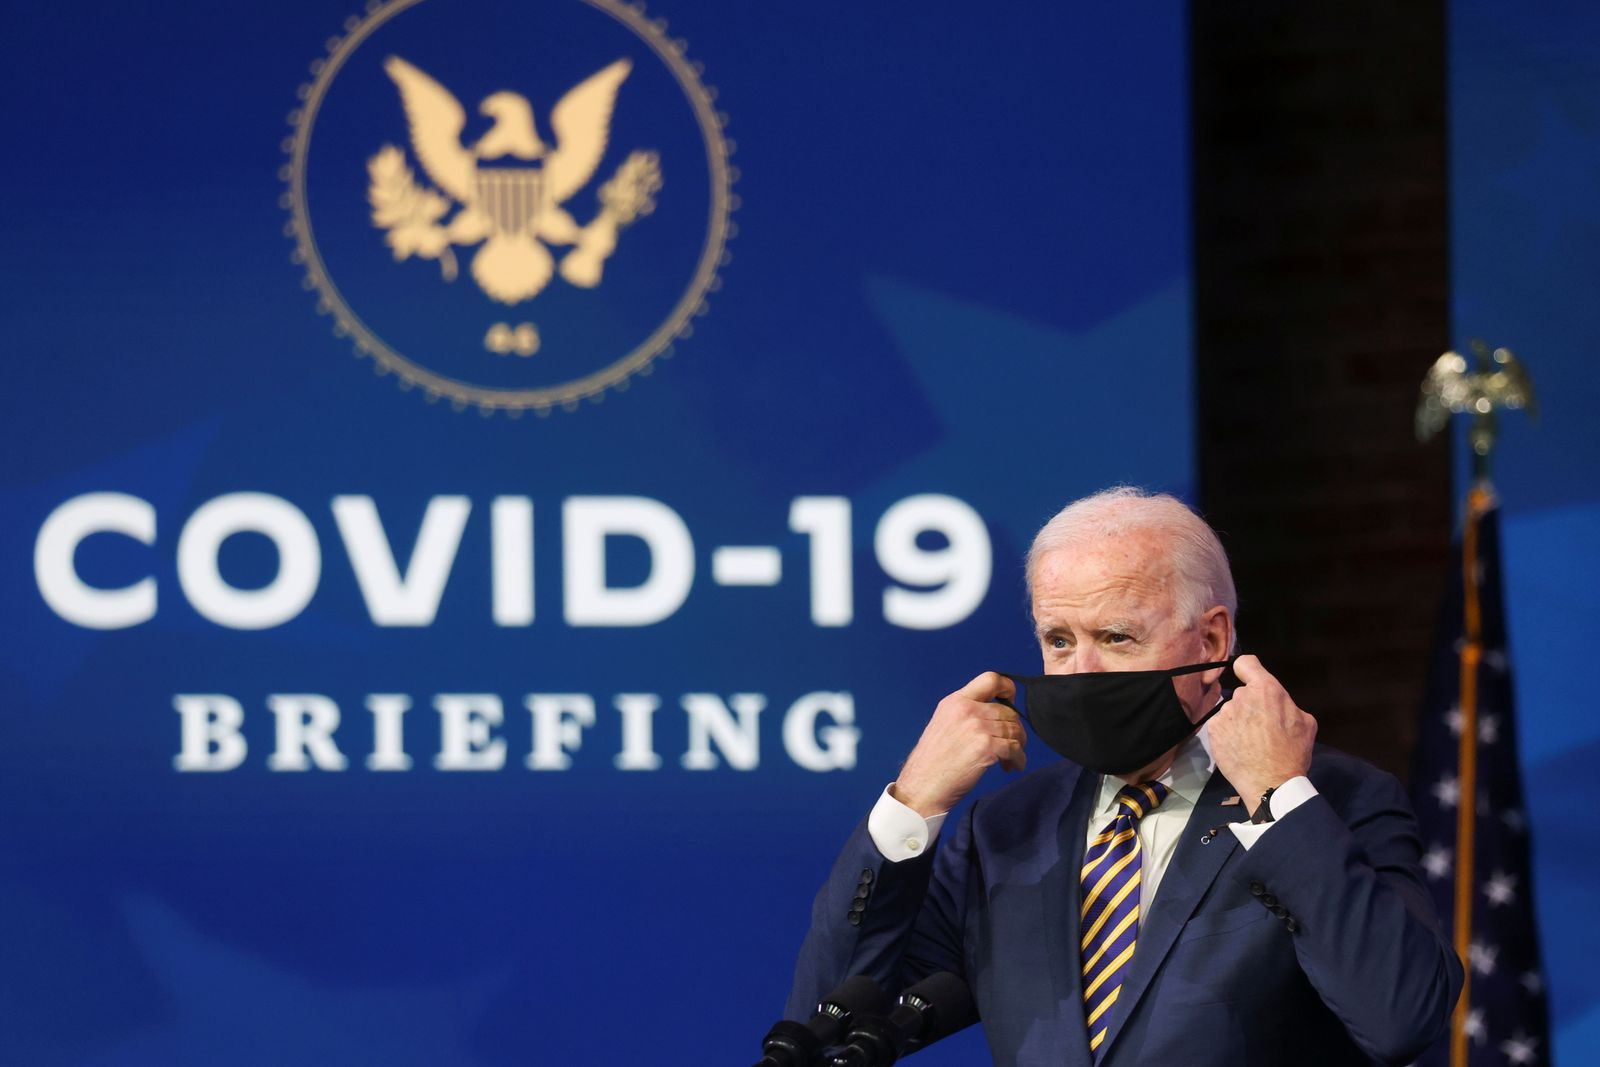 U.S. President-elect Joe Biden delivers remarks on the U.S. response to the coronavirus disease (COVID-19) outbreak, at his transition headquarters in Wilmington